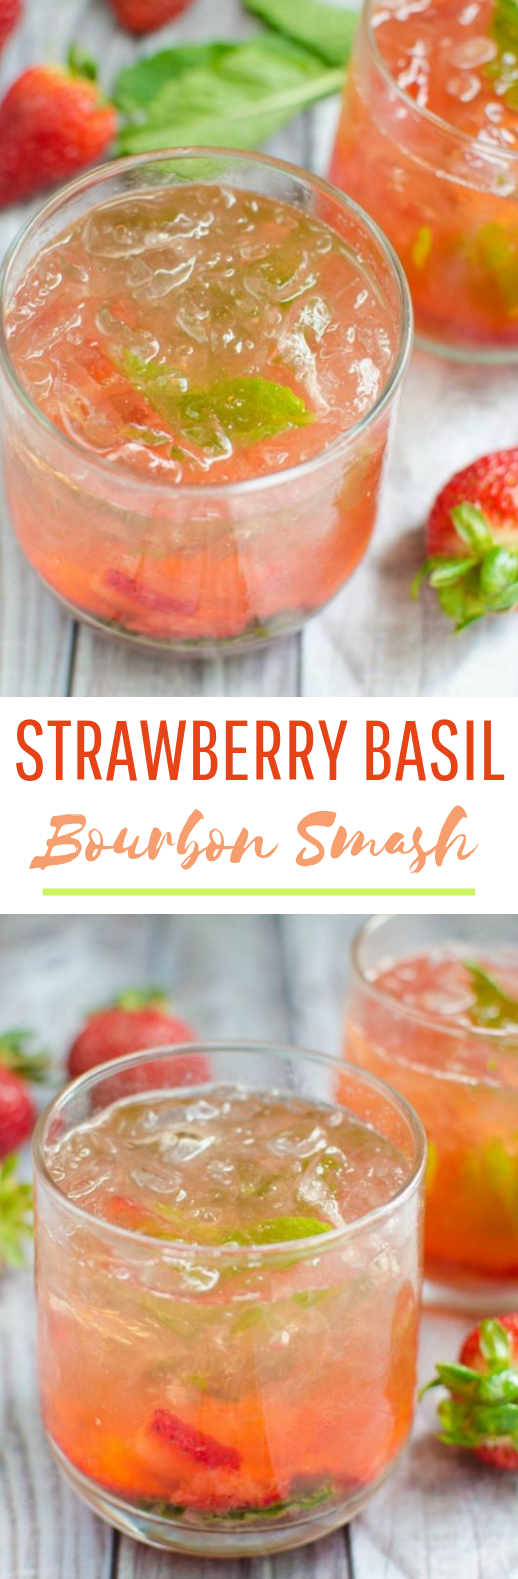 Strawberry Basil Bourbon Smash #cocktail #drinks